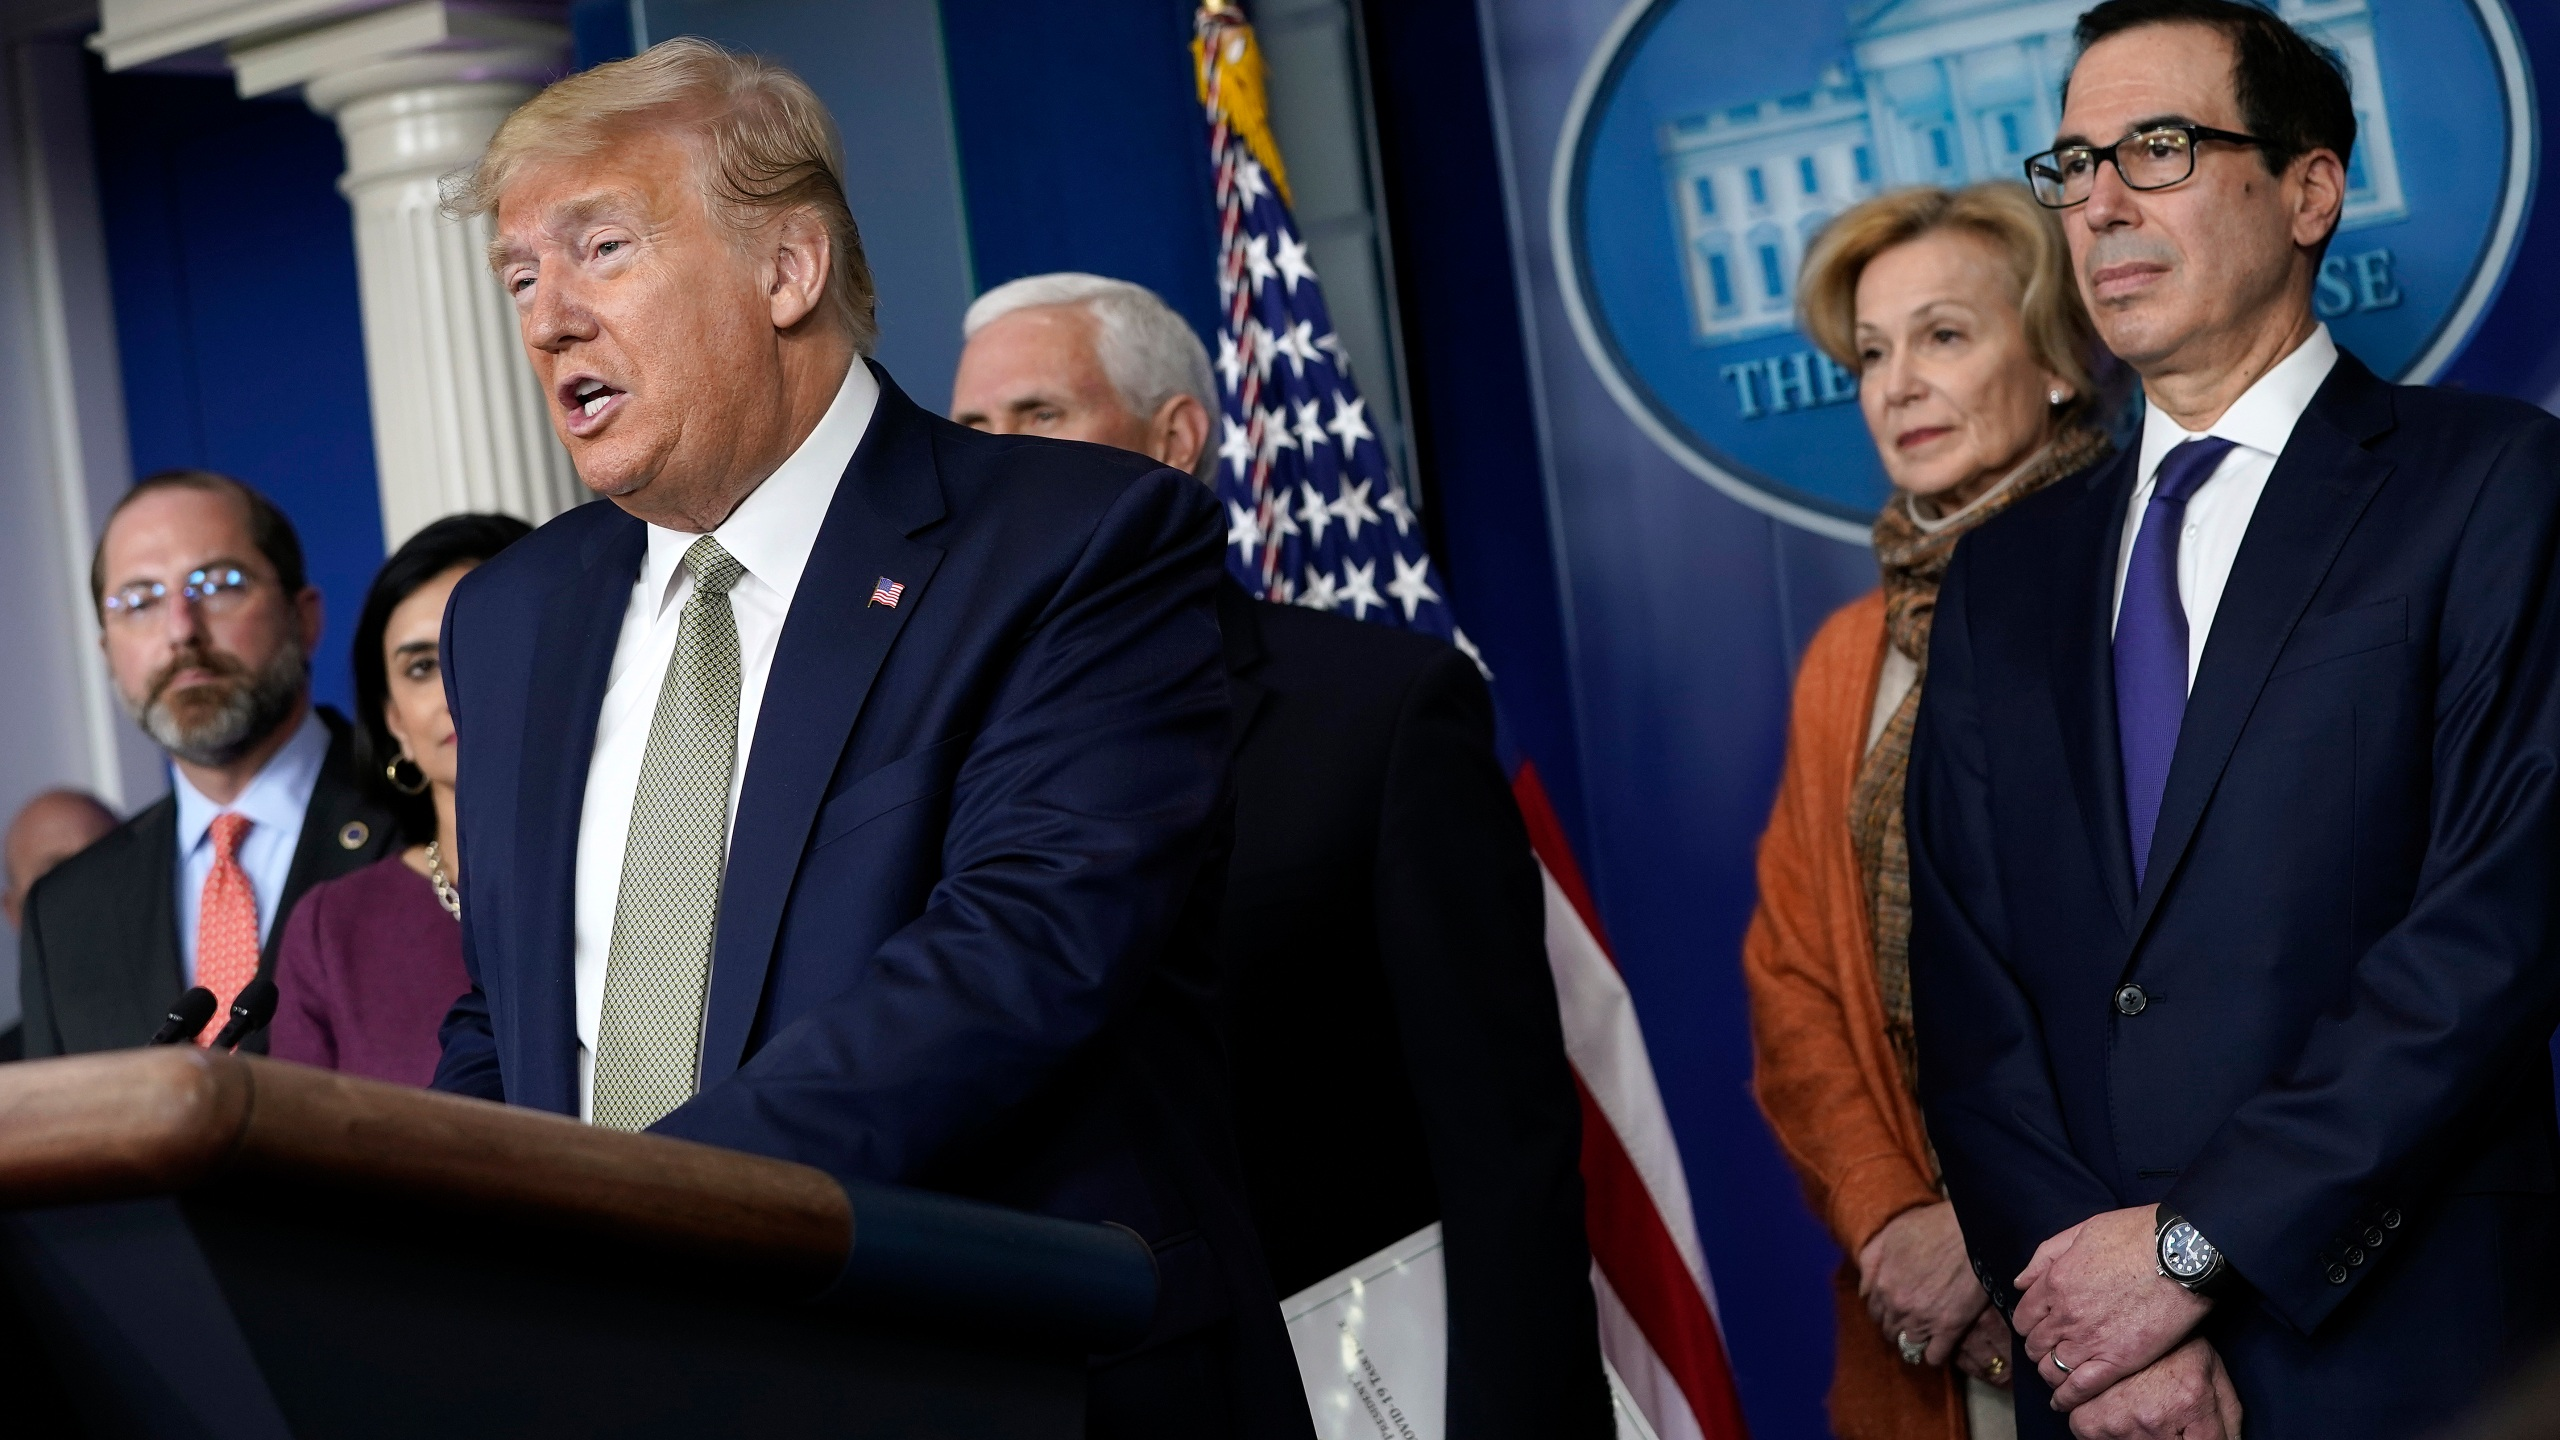 President Donald Trump, joined by members of the Coronavirus Task Force, speaks about the coronavirus in the press briefing room at the White House on March 17, 2020. (Drew Angerer/Getty Images)